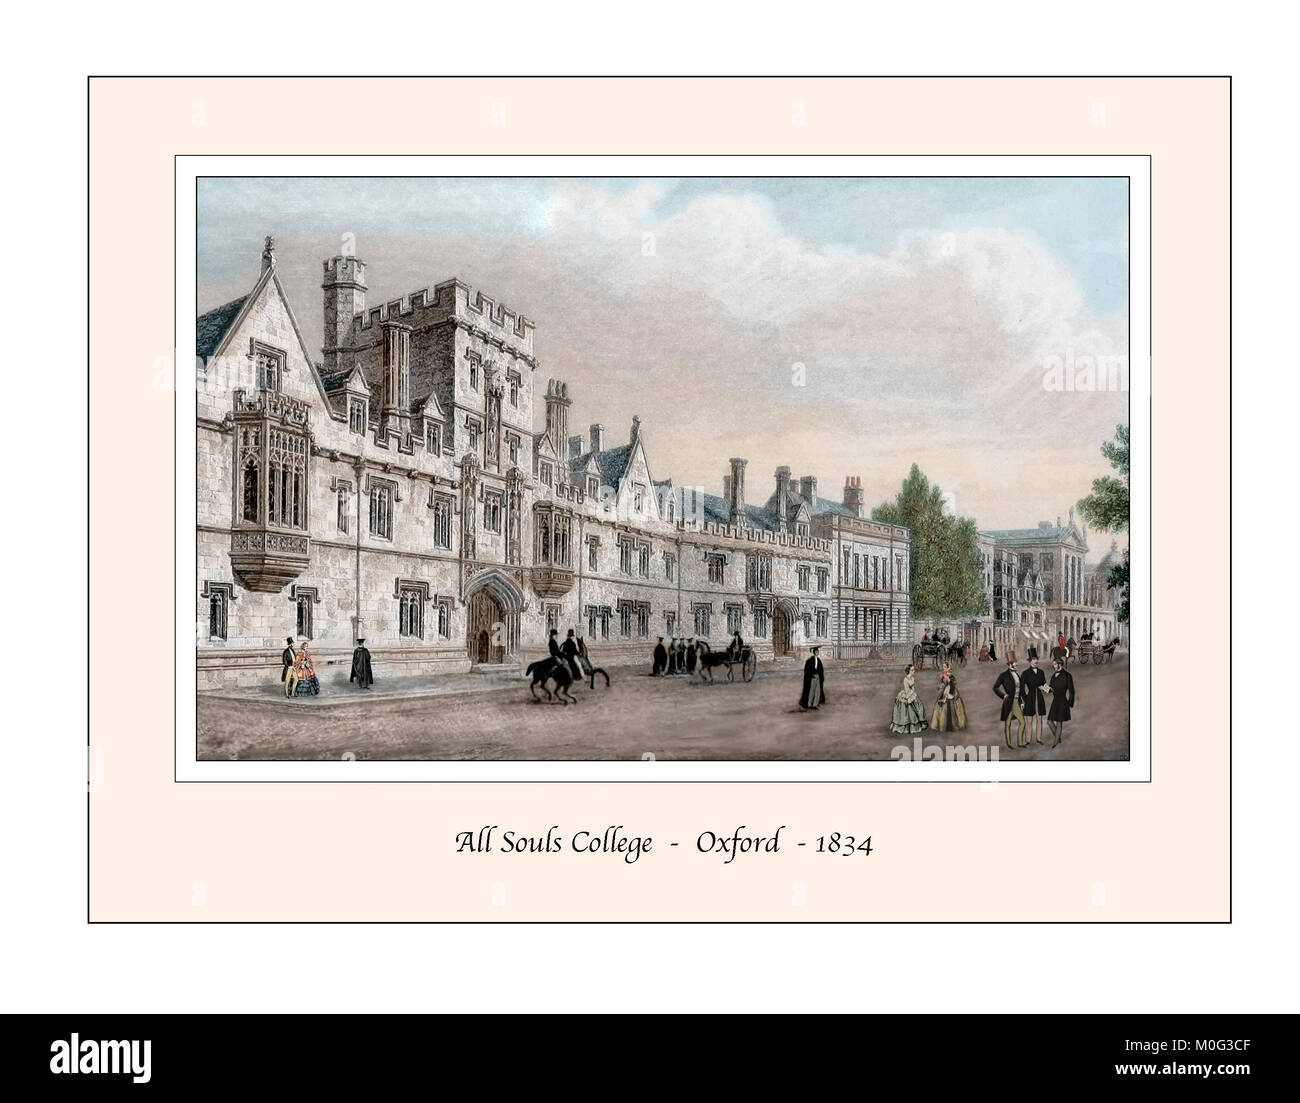 All Souls College Oxford Original Design based on a 19th century Engraving - Stock Image